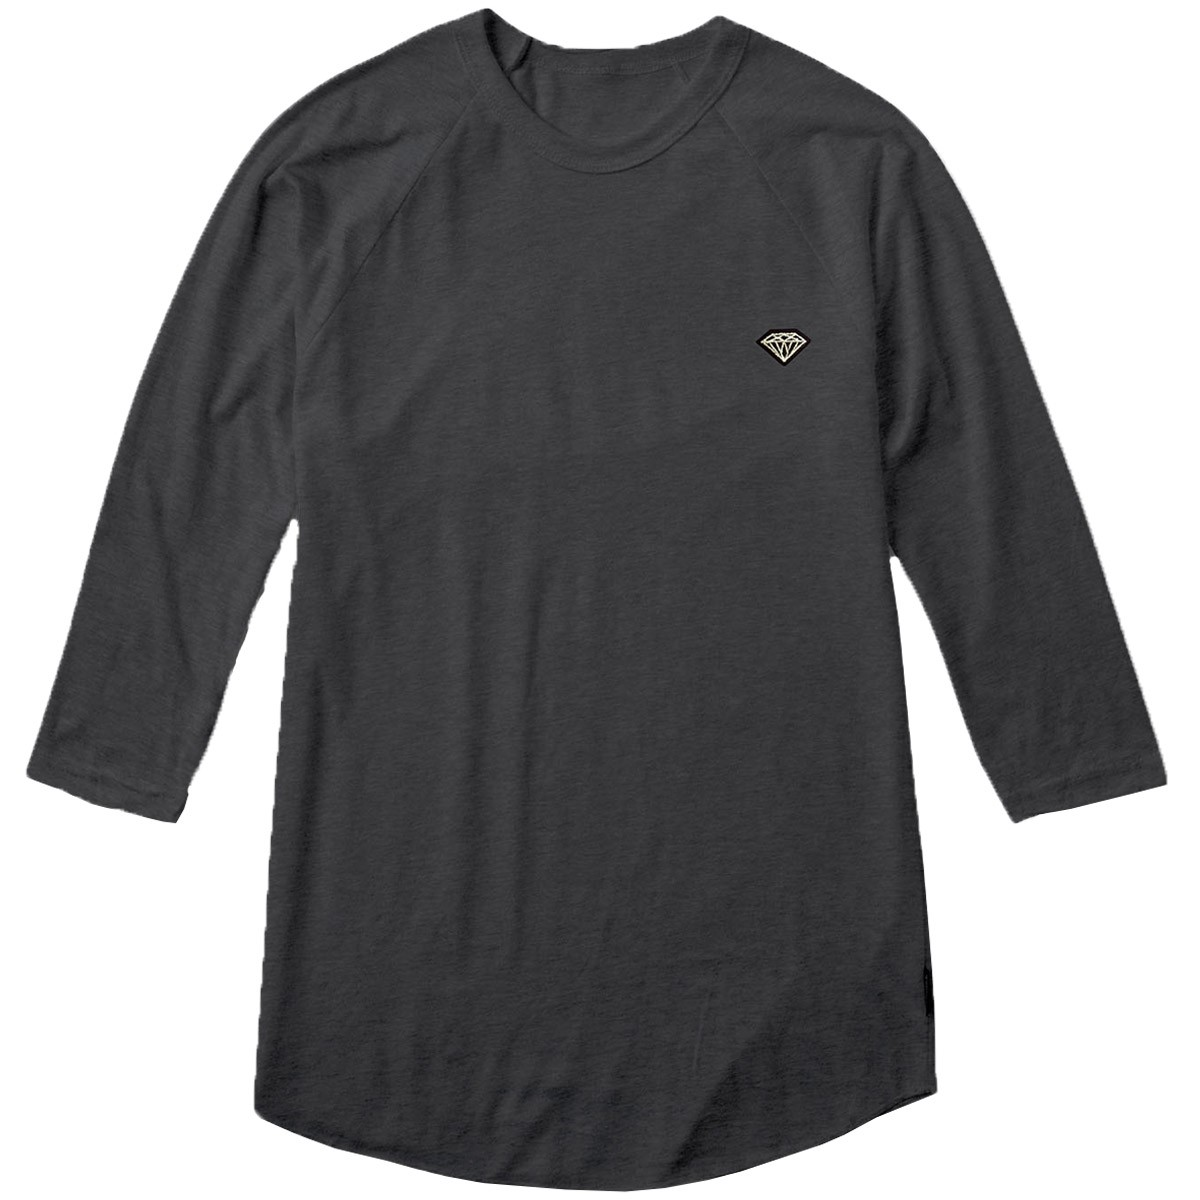 Diamond Supply Co. Diamond Patch T-Shirt - Black